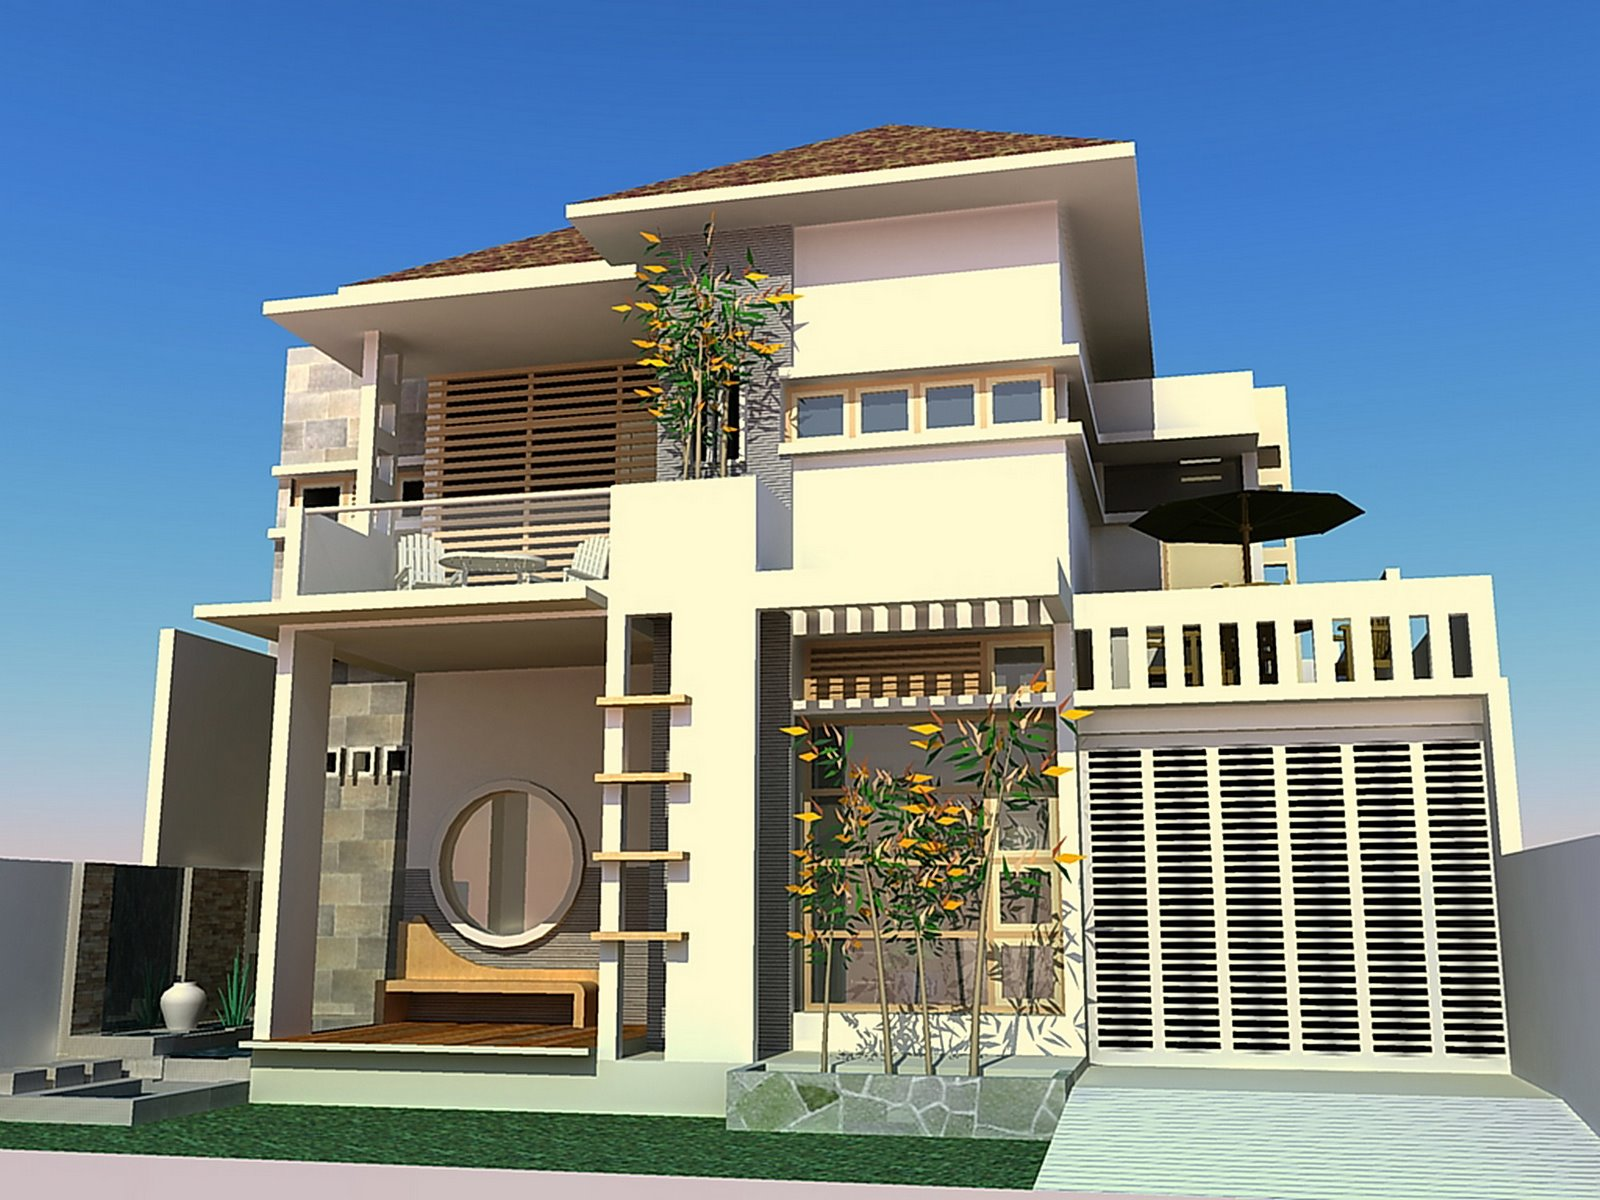 New home designs latest modern homes front designs florida for Latest house designs